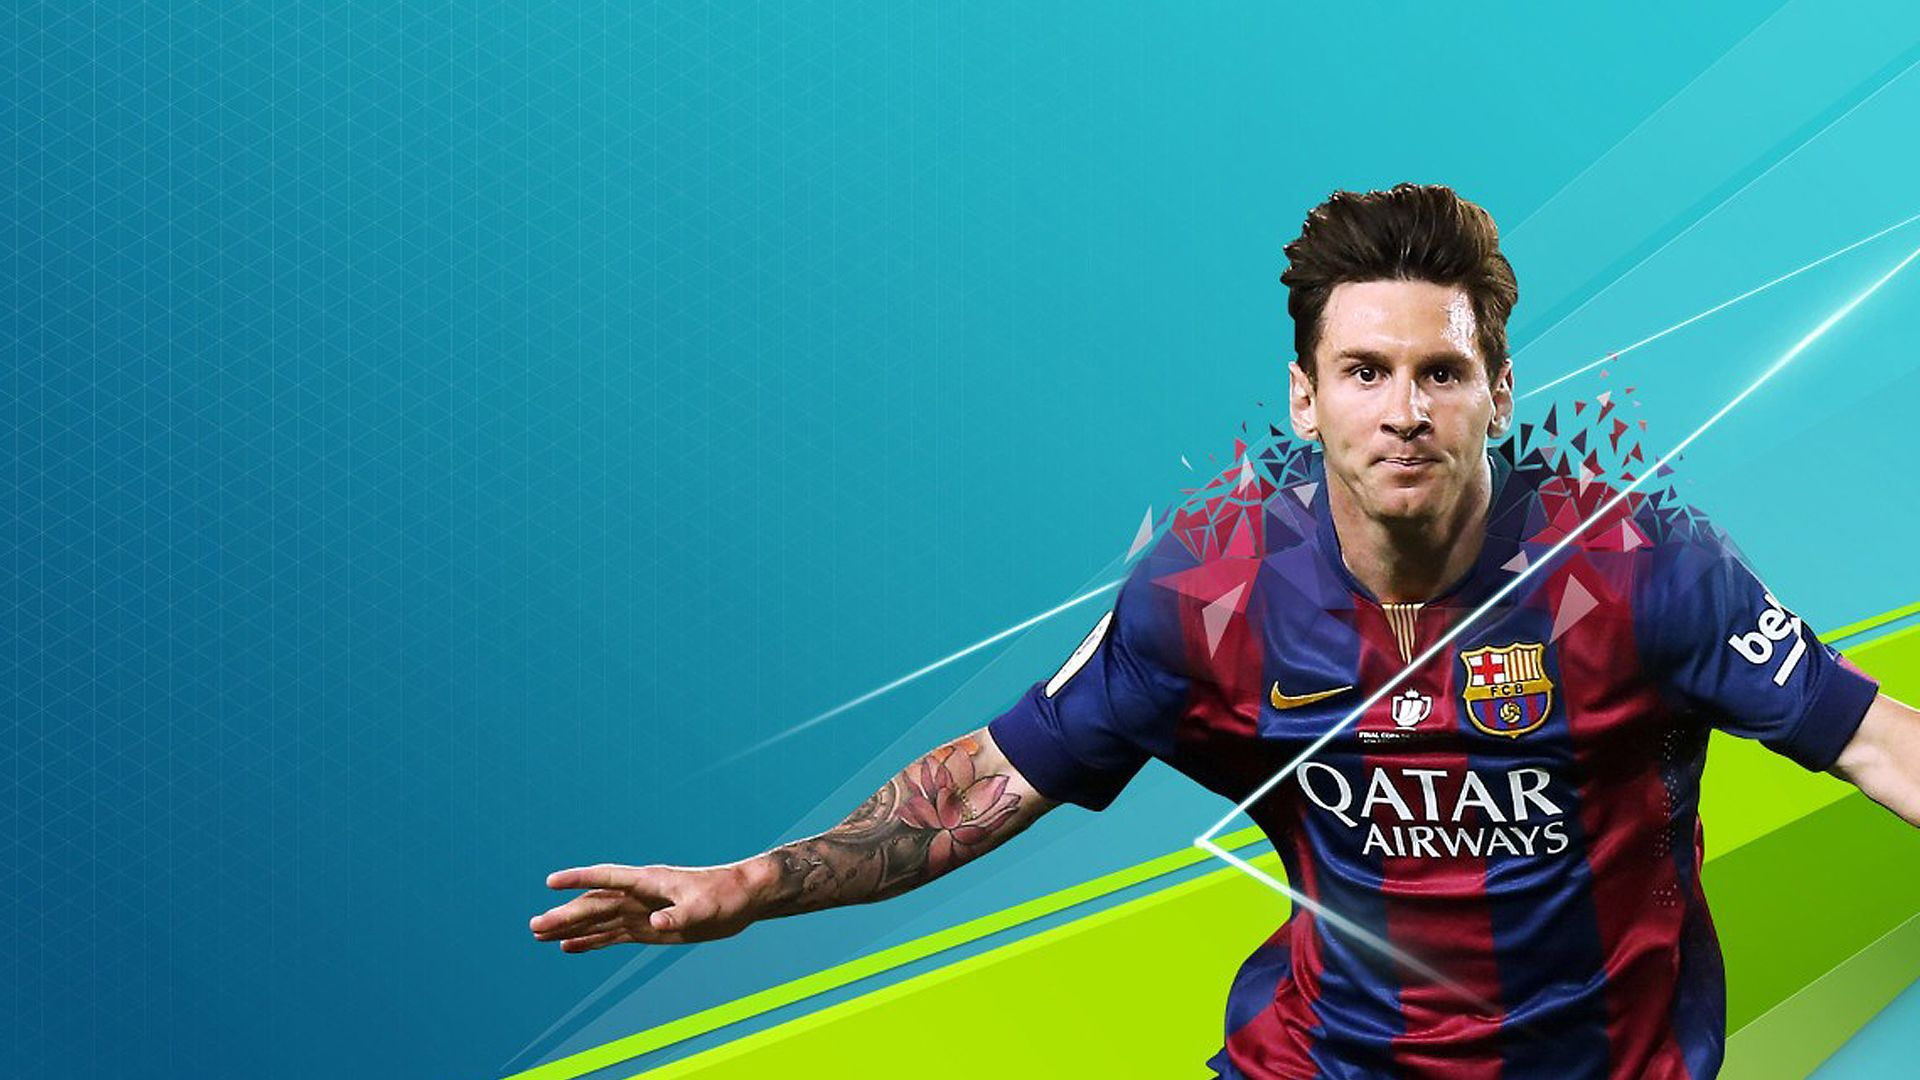 messi hd wallpapers p | football | pinterest | hd wallpaper and